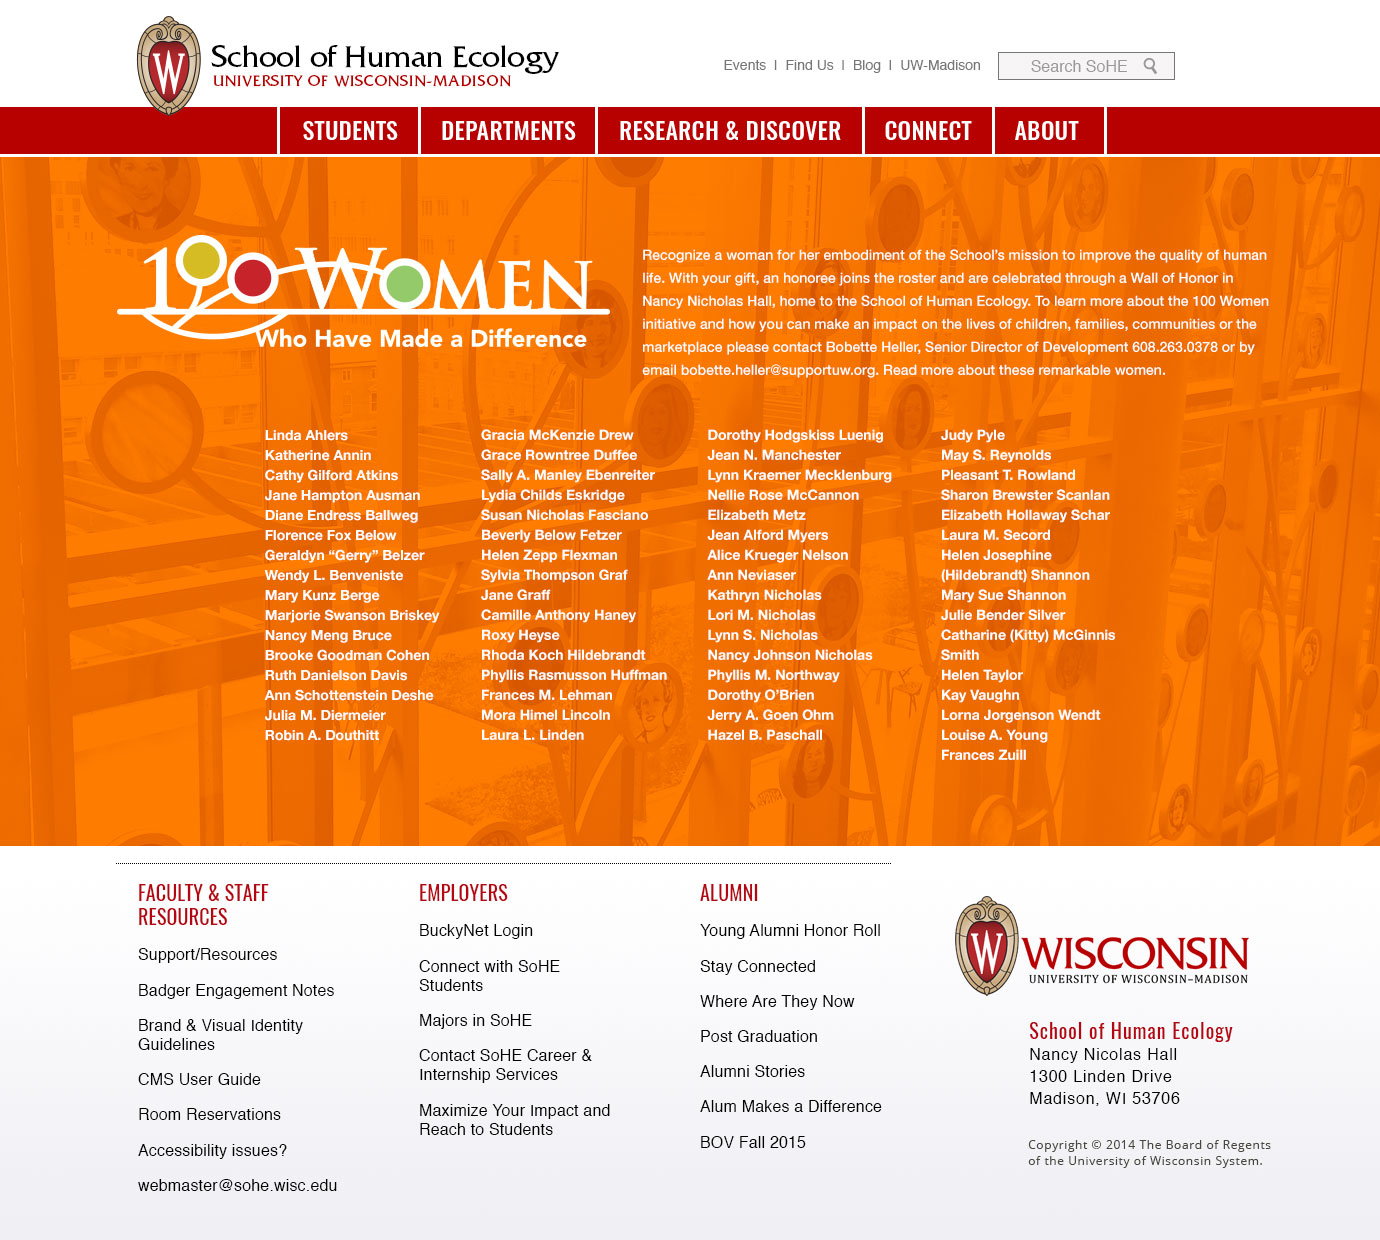 School of Human Ecology - 100 Women Web Page